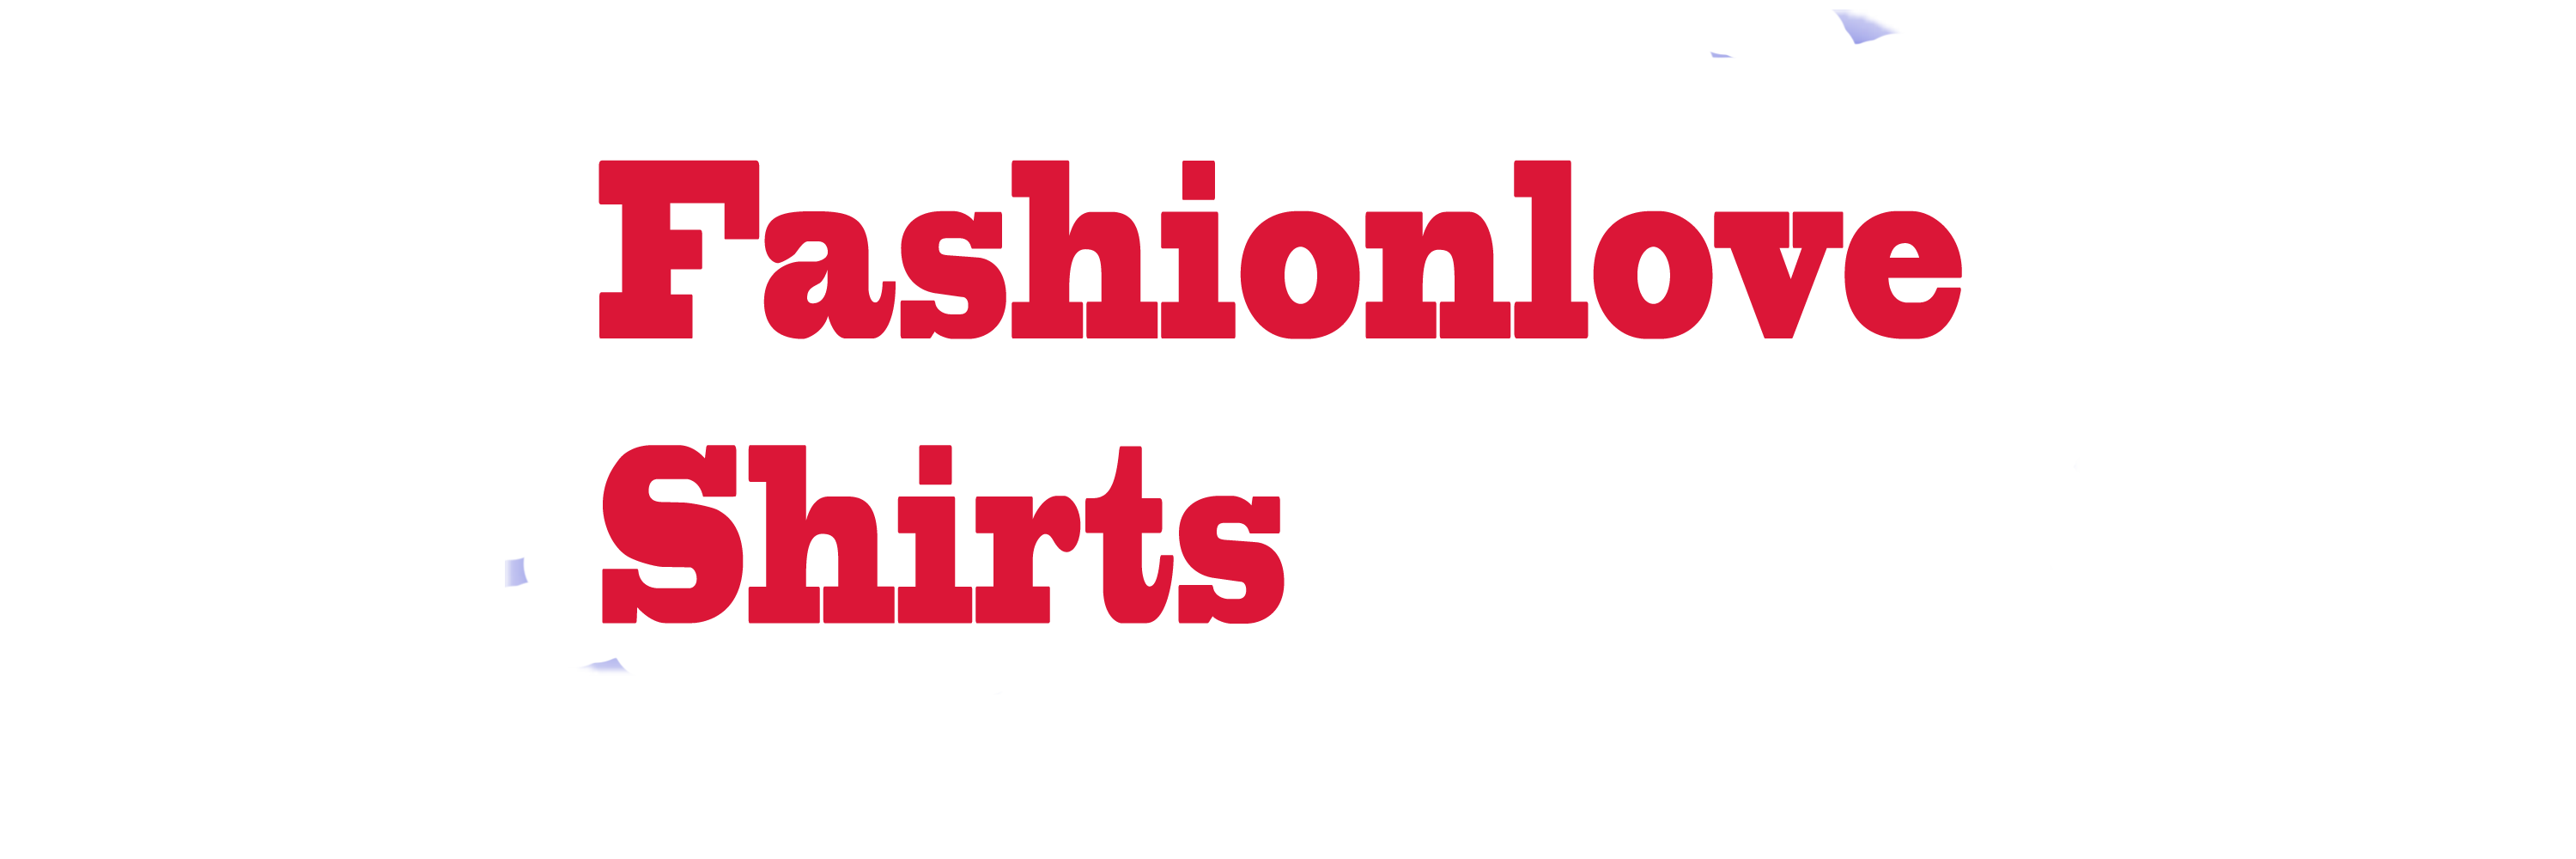 Fashionloveshirts